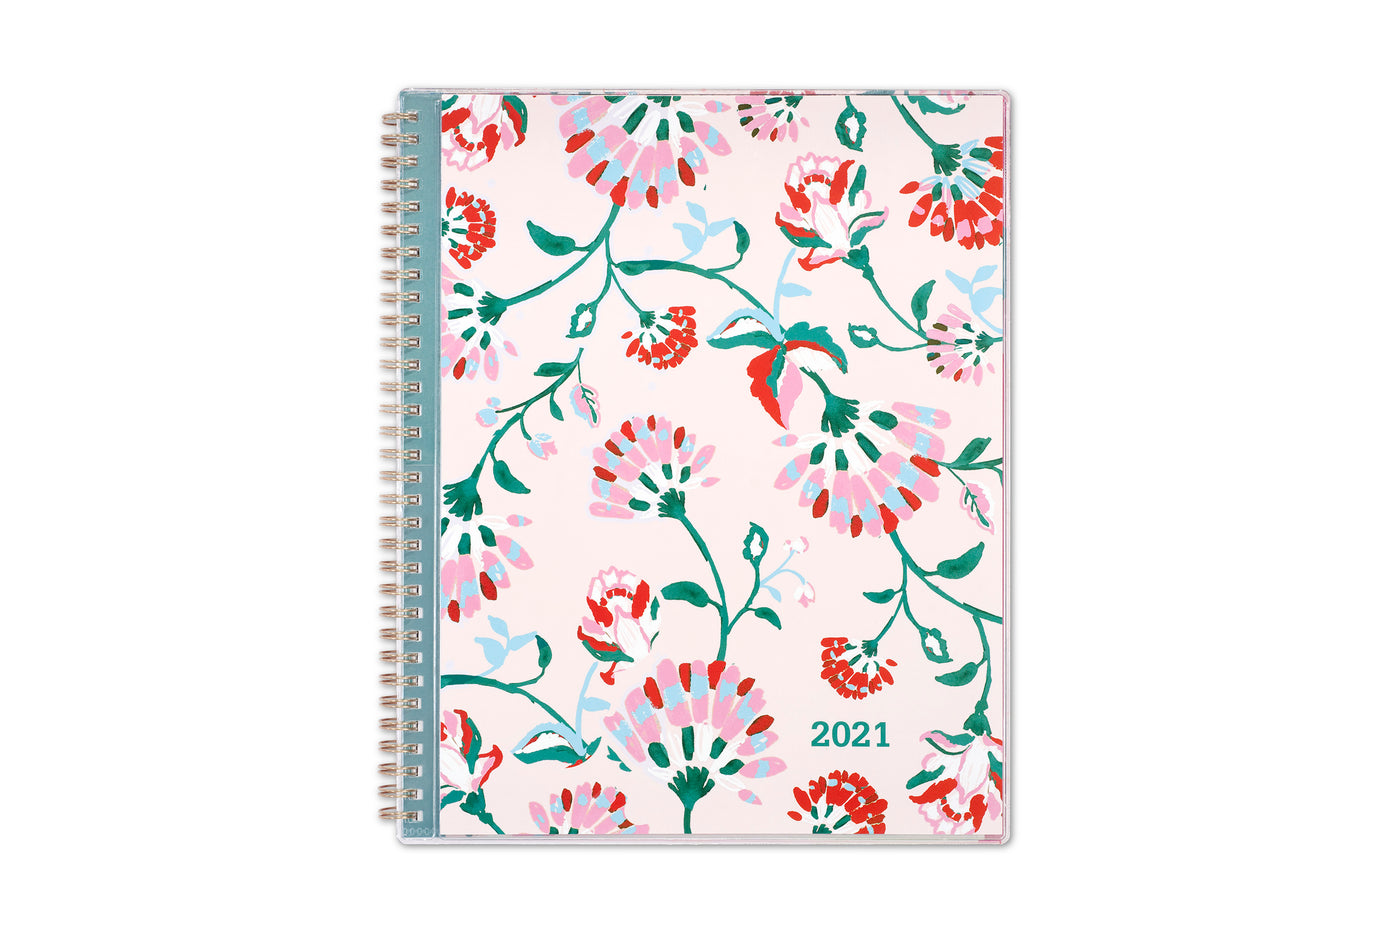 breast cancer awareness 2021 planner by blue sky featuring pink flowers and blush background on the front cover in a 8.5x11 size